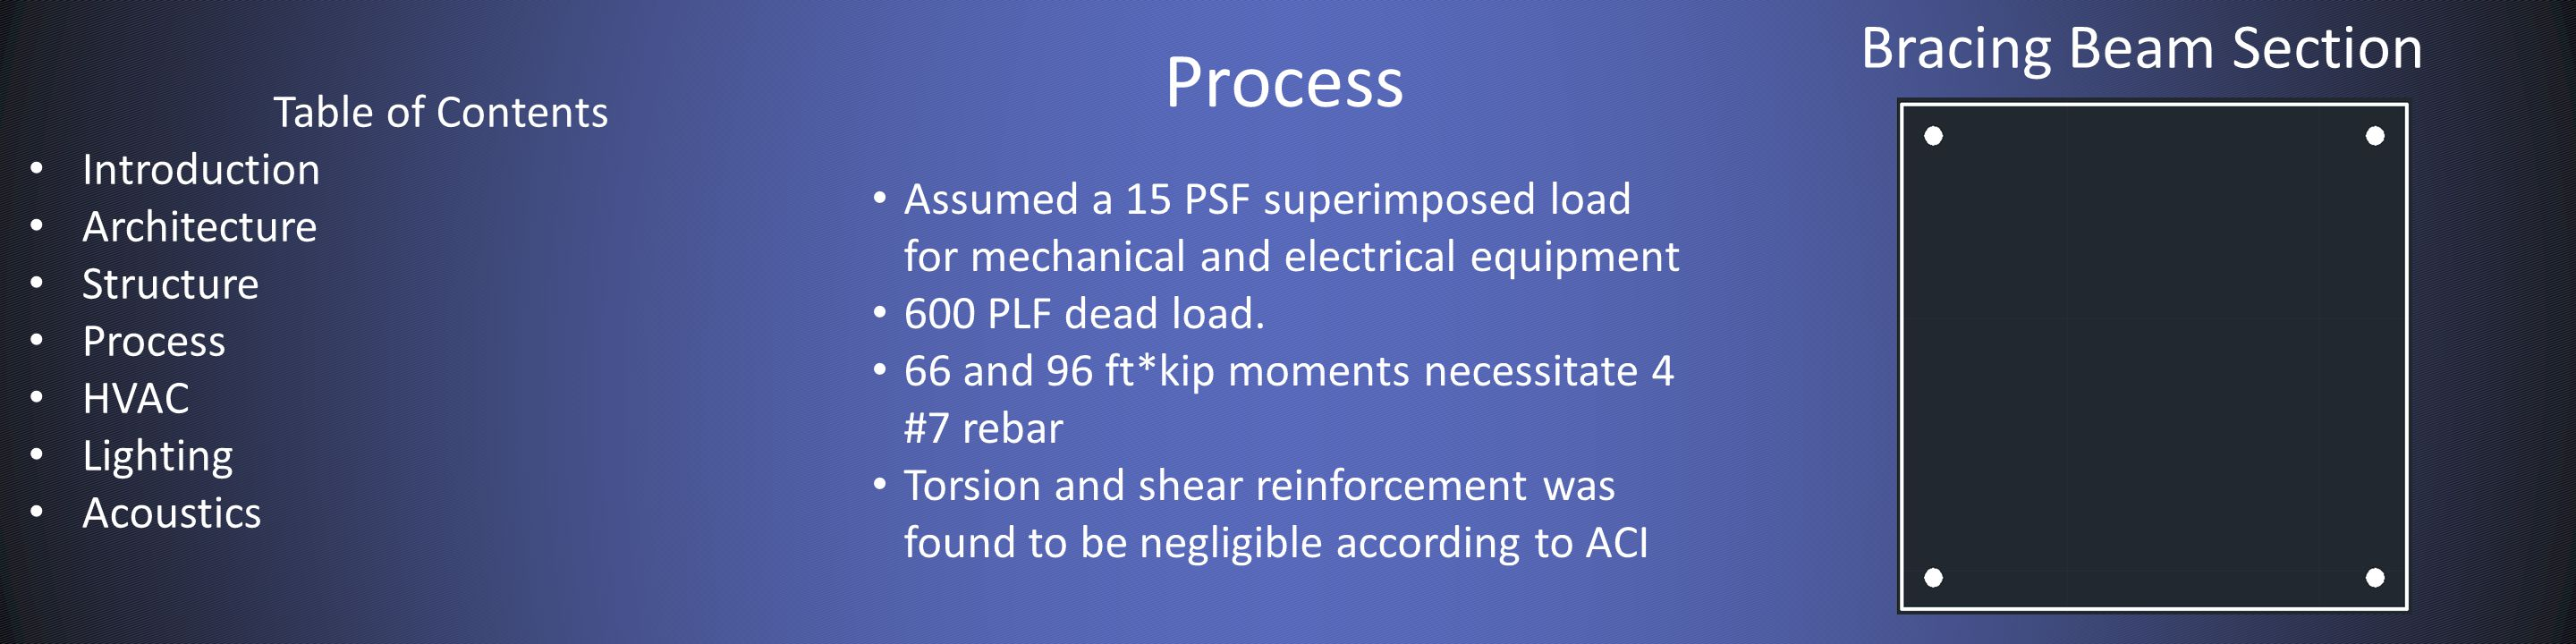 Process Assumed a 15 PSF superimposed load for mechanical and electrical equipment 600 PLF dead load.